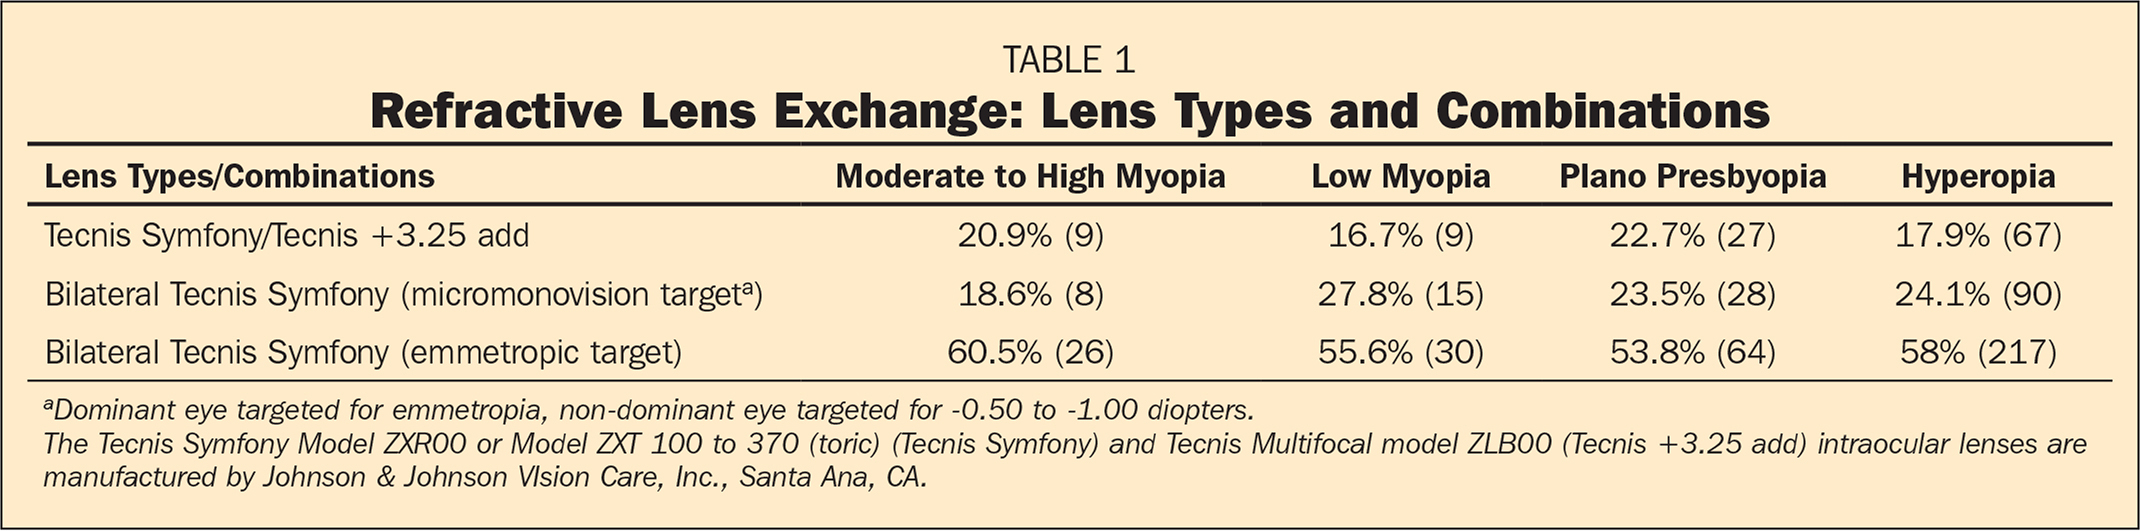 Refractive Lens Exchange: Lens Types and Combinations